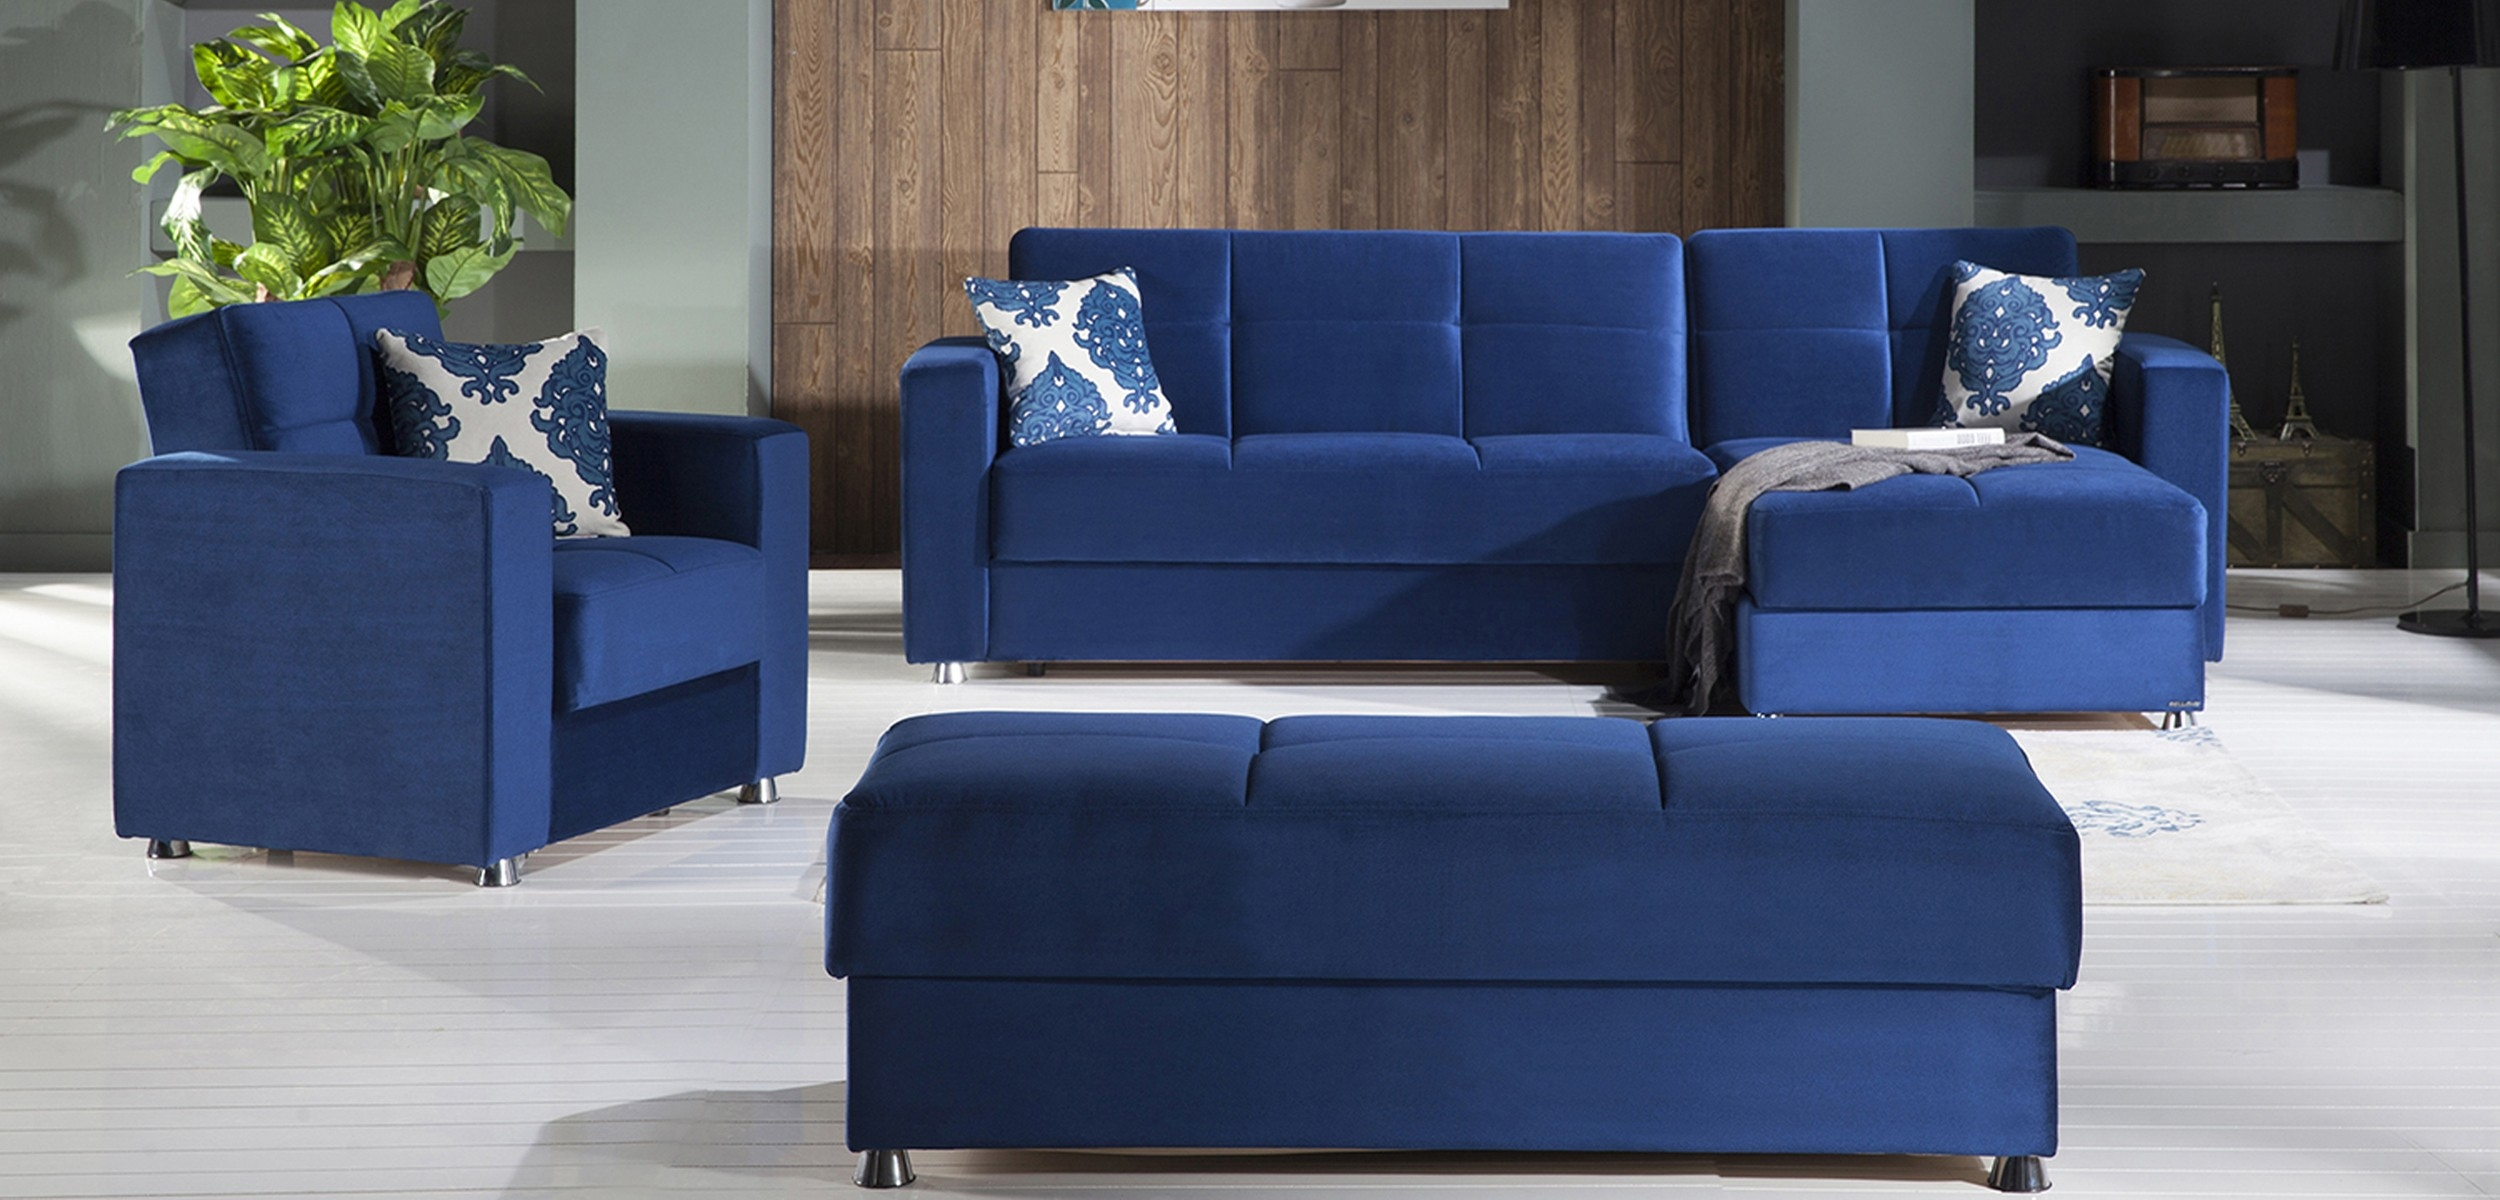 Elegant Convertible Sectional Sofa Set In Blue Istikbal Furniture With Regard To Convertible Sectional Sofas (Image 4 of 15)